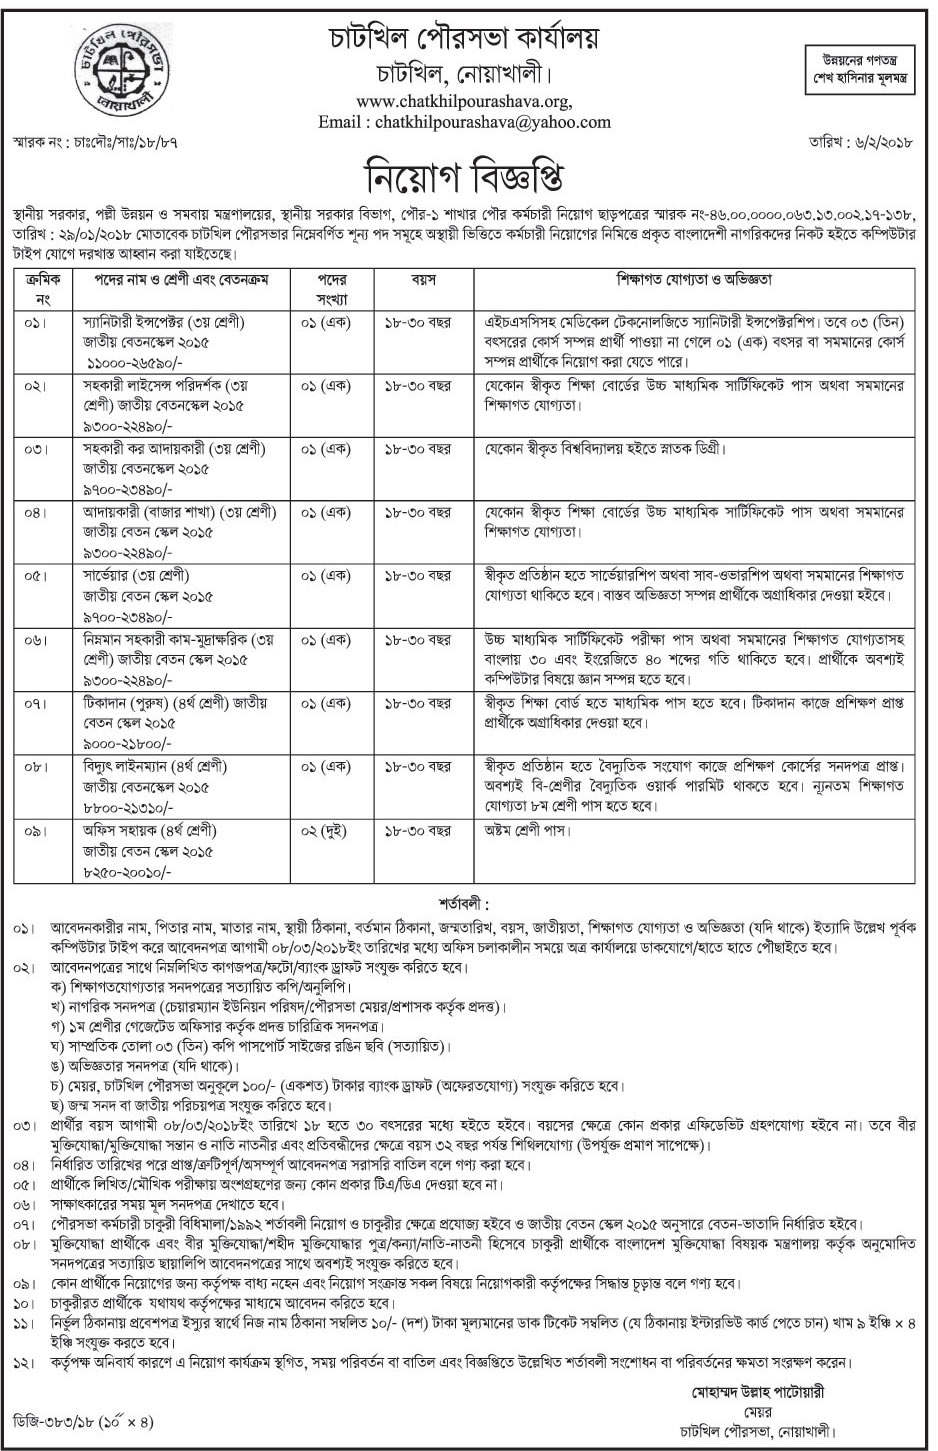 Chatkhil Pourashava Job Apply Instruction, Educational Qualification, Salary, Application Fee, Age and Other Information